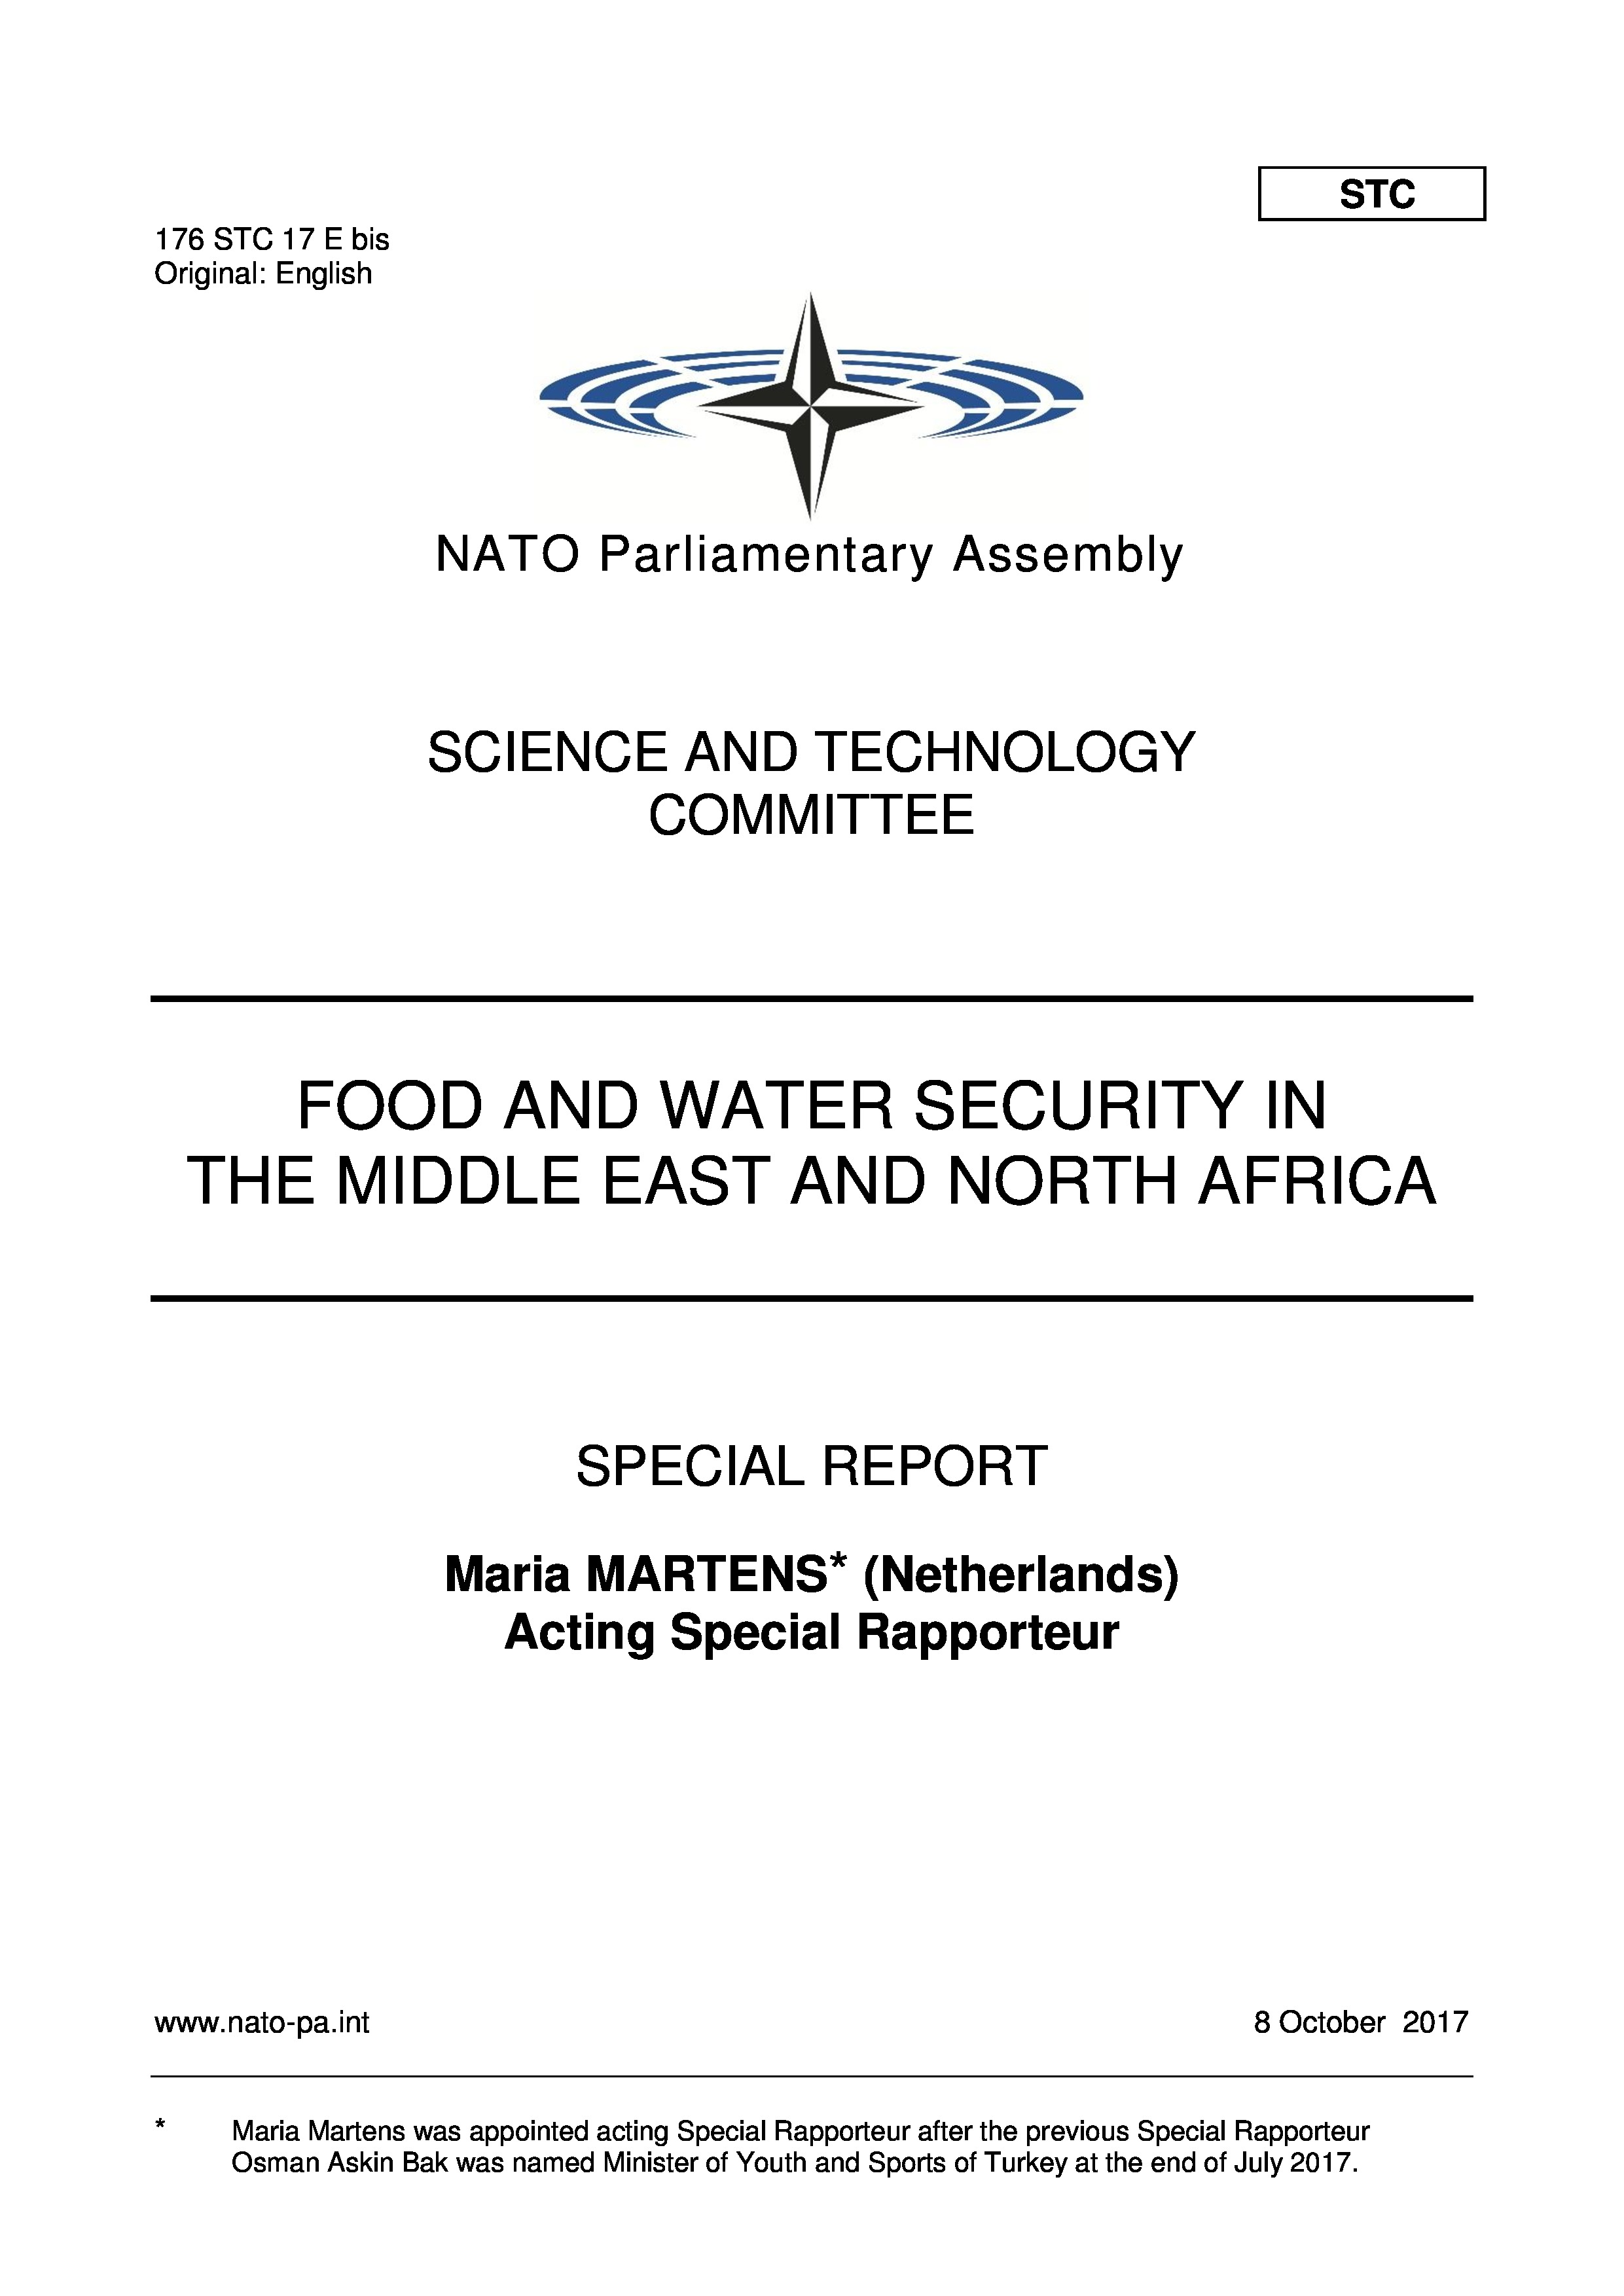 2017 - FOOD AND WATER SECURITY MENA REGION - MARTENS REPORT